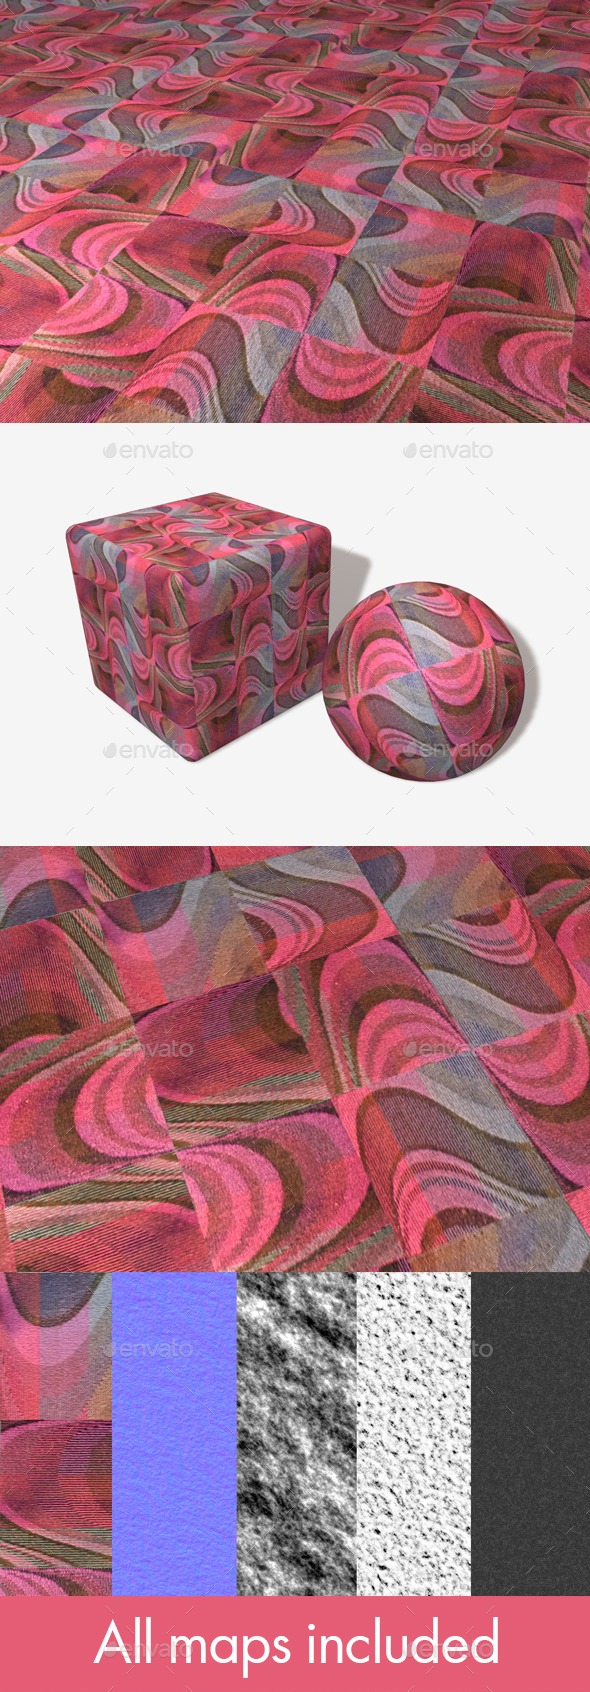 Psychedelic Pink Carpet Seamless Texture - 3DOcean Item for Sale